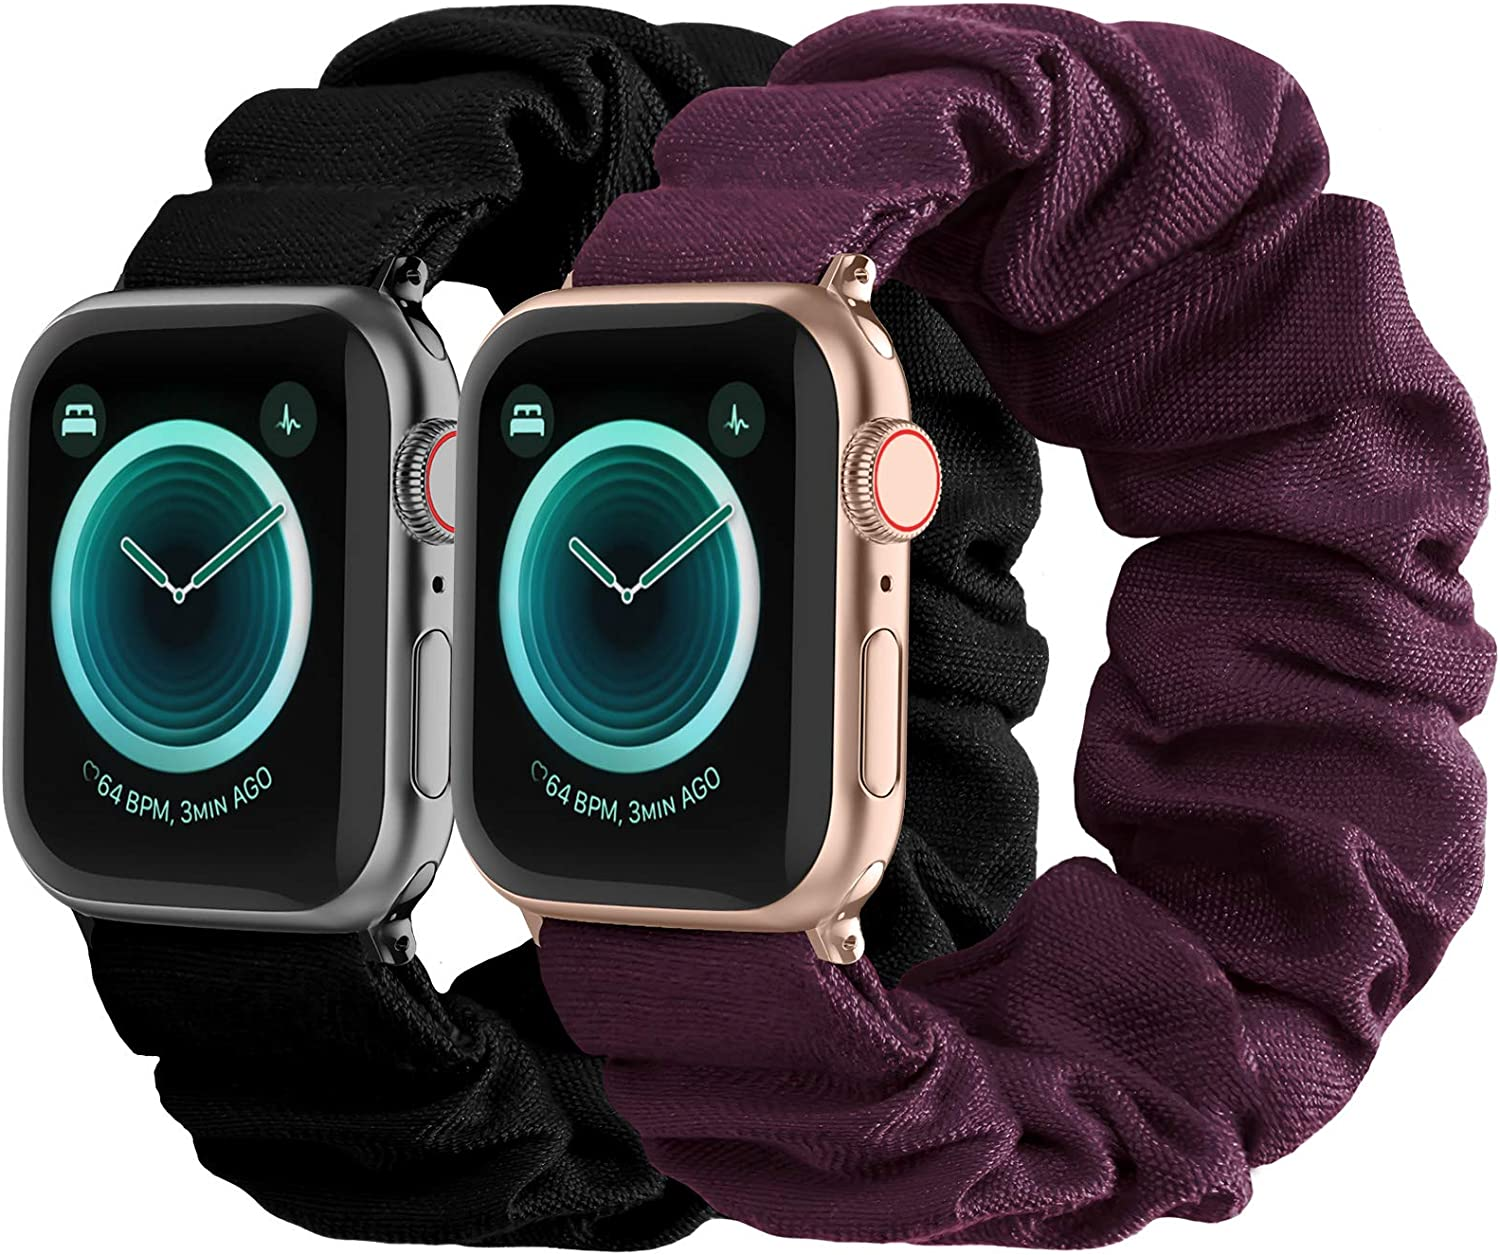 Compatible with Scrunchies Apple Watch Bands 42mm 44mm, Women Cloth Pattern Printed Fabric Wristbands Straps Elastic Scrunchy Band for iWatch Series 6 5 4 3 2 1 SE (Large Black, Wine)